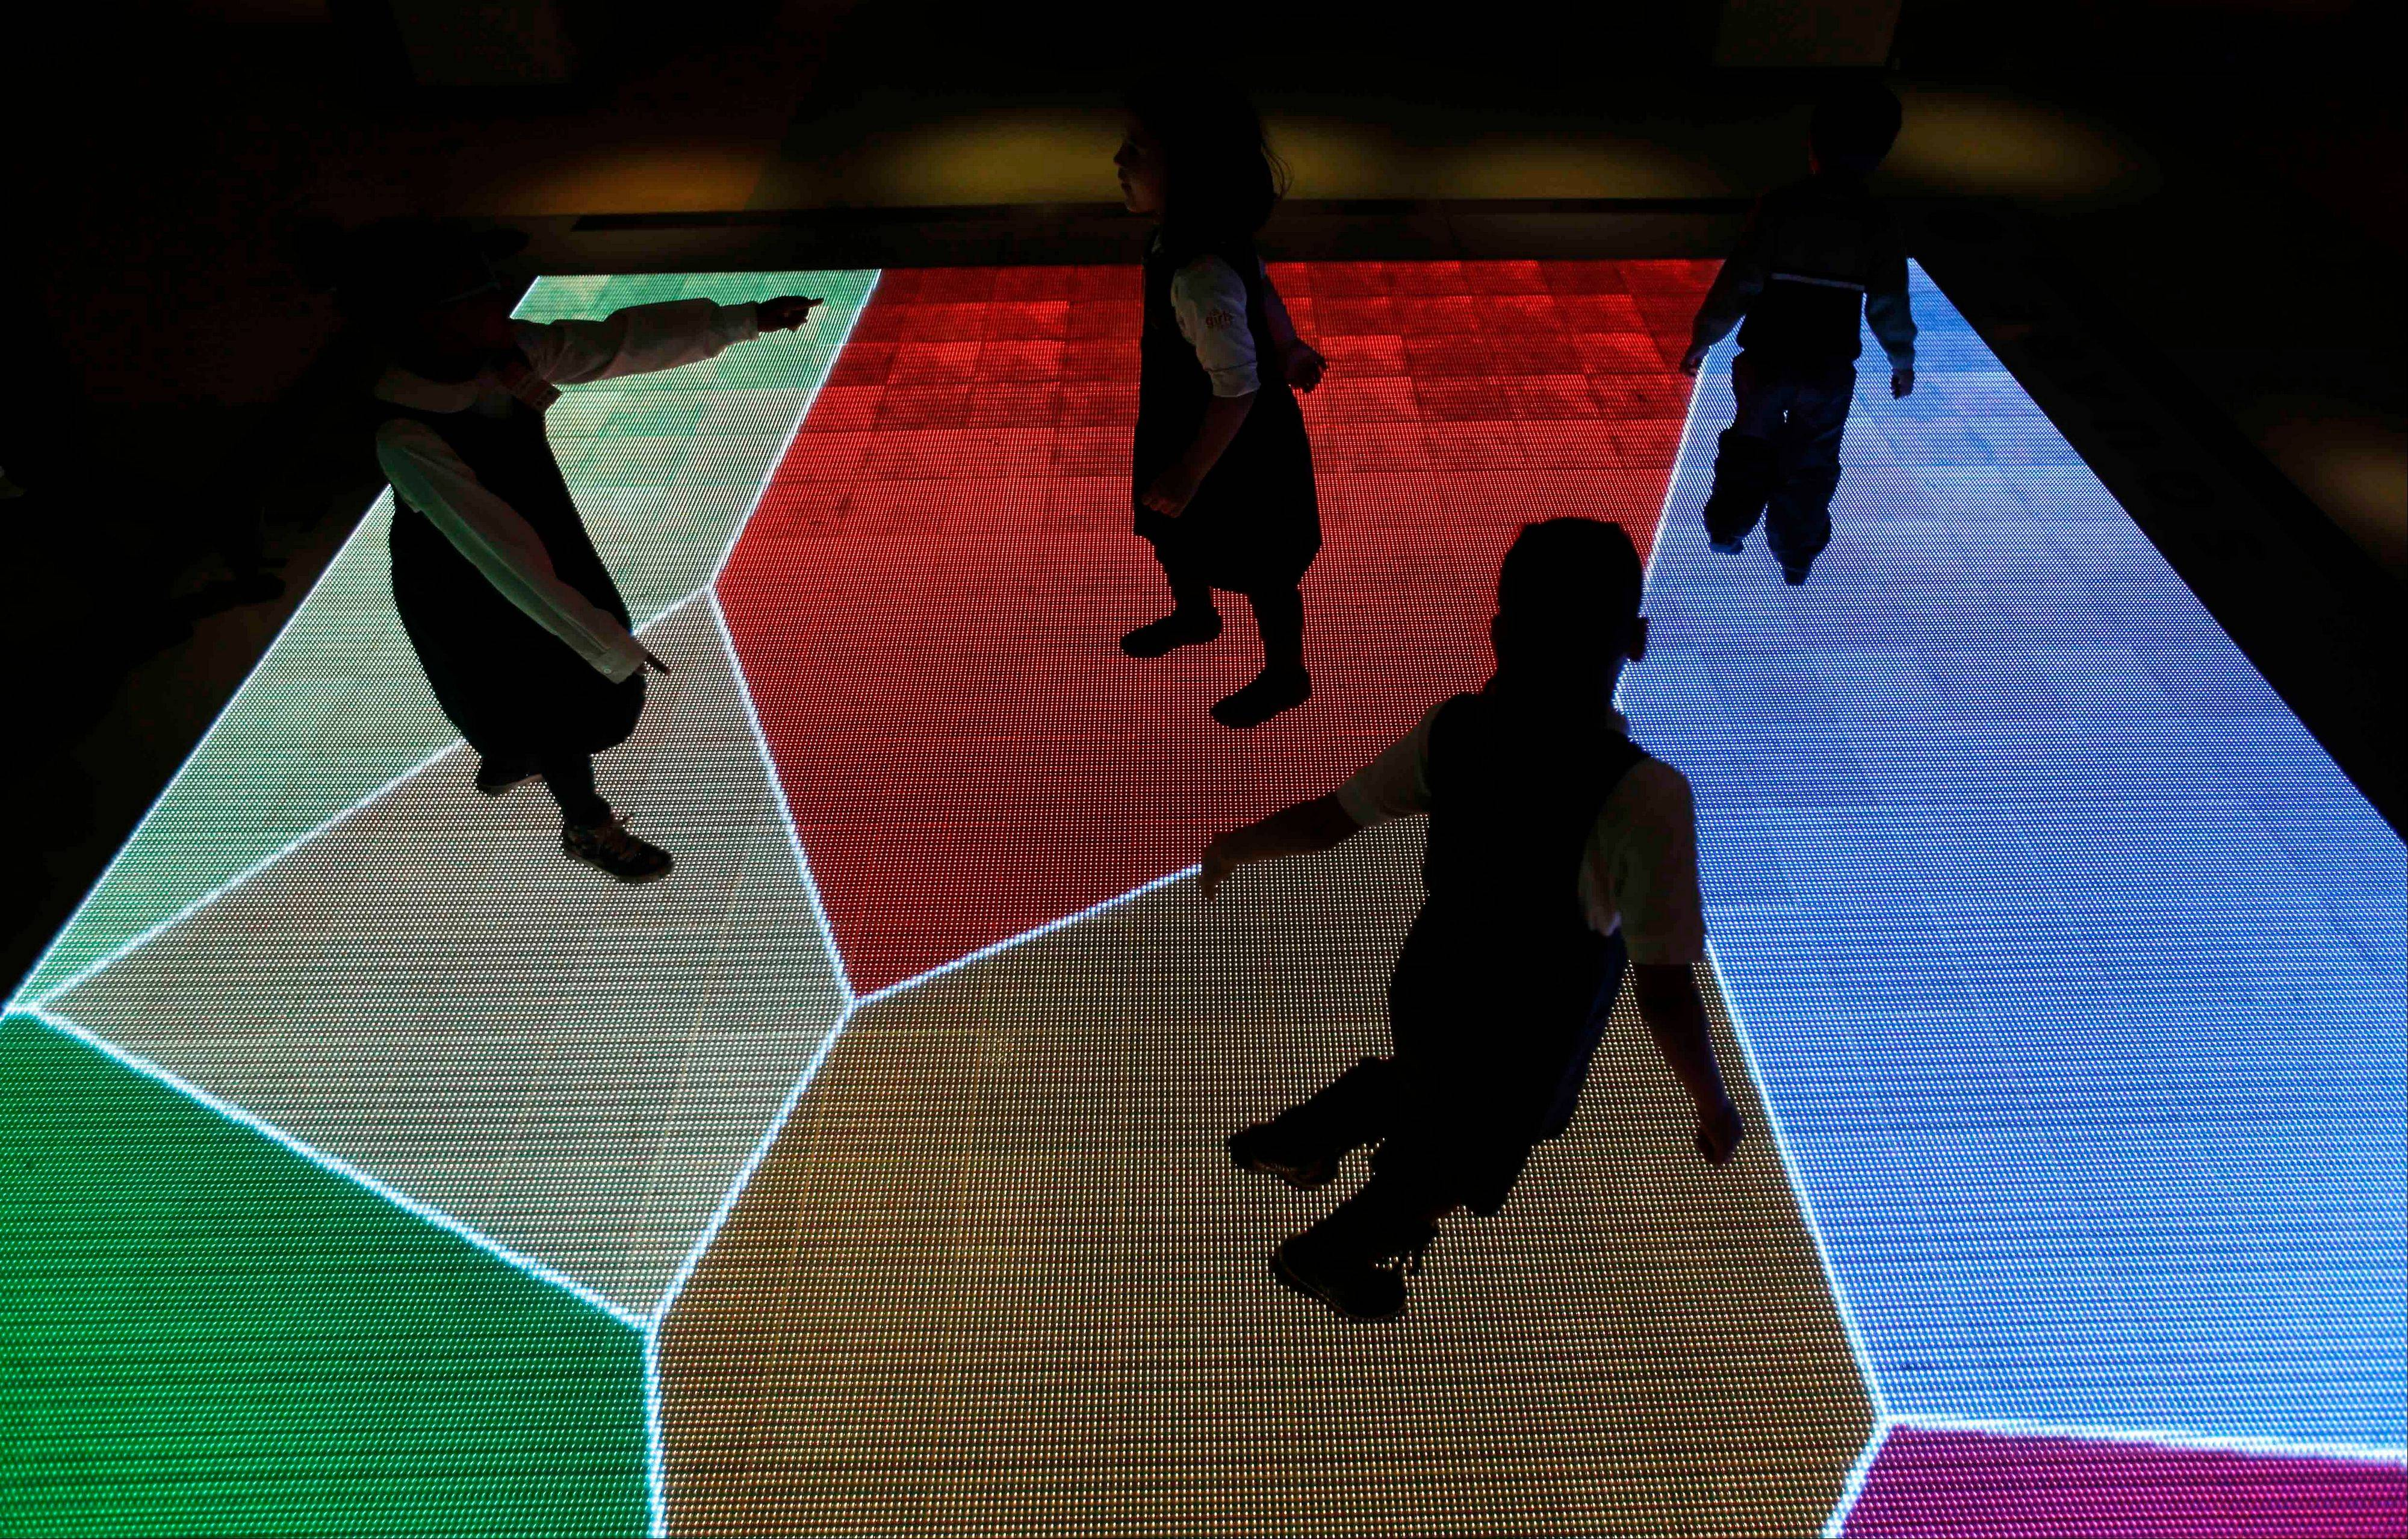 Children run across an interactive exhibit at the new National Museum of Mathematics in New York.